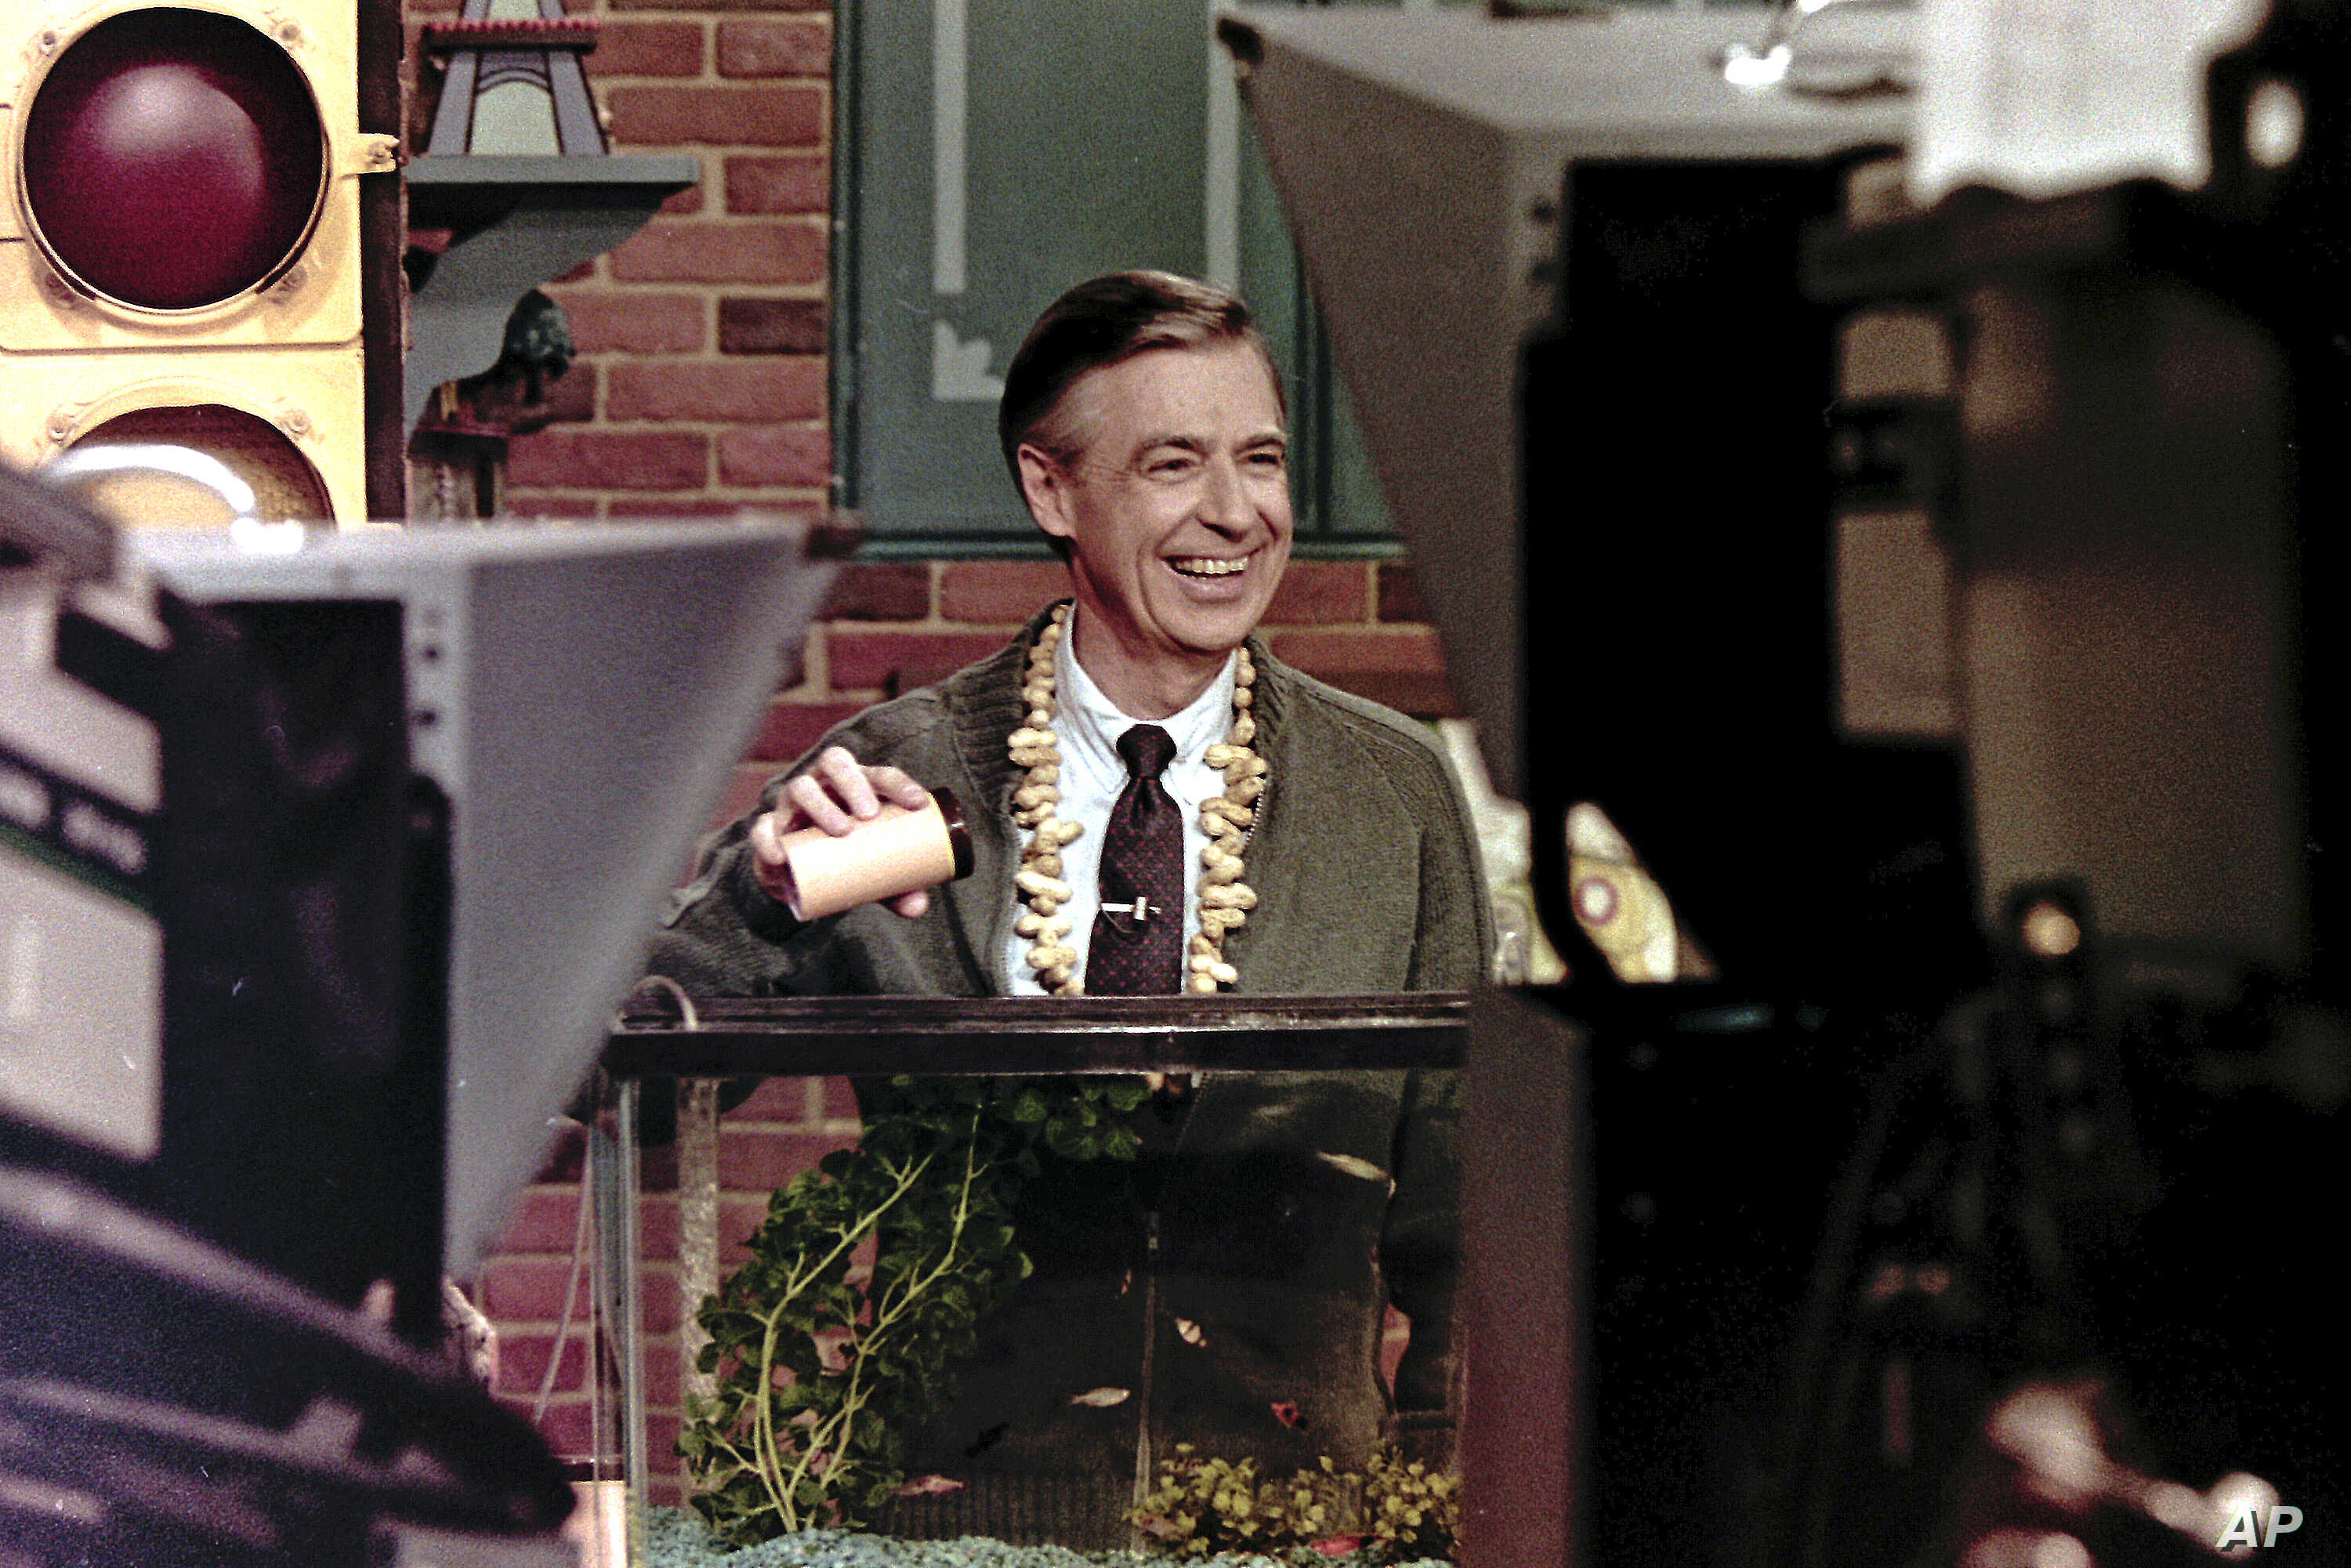 Across Mister Rogers Actual Neighborhoods His Faith Echoes Voice Of America English